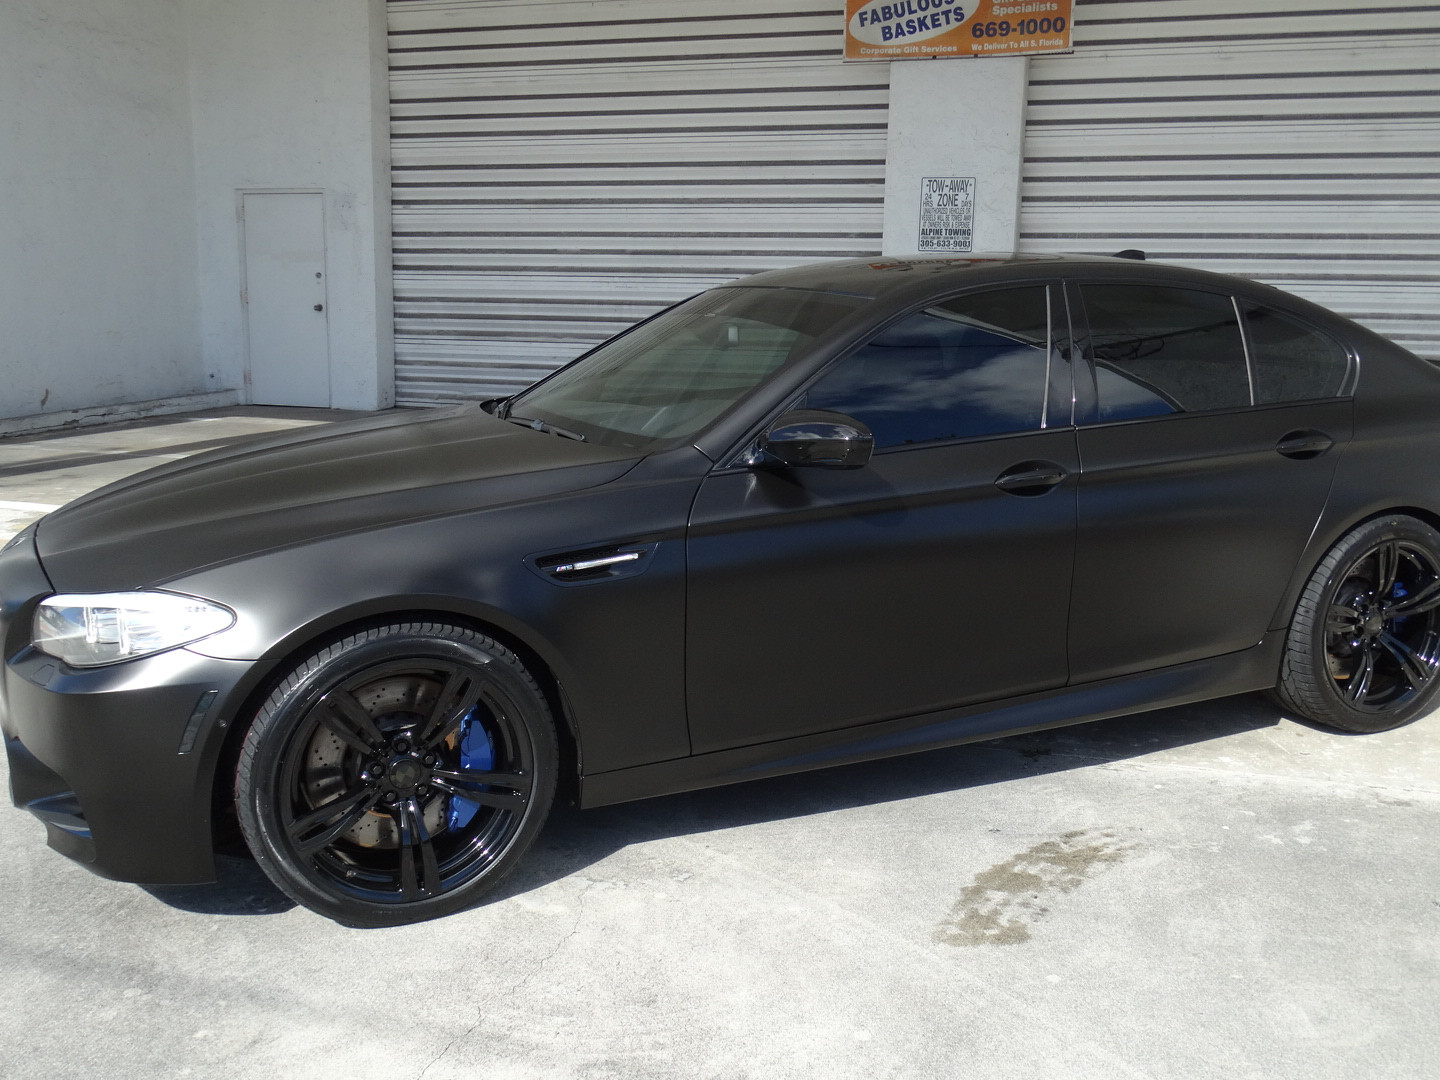 BMW - Satin Black Car Wrap